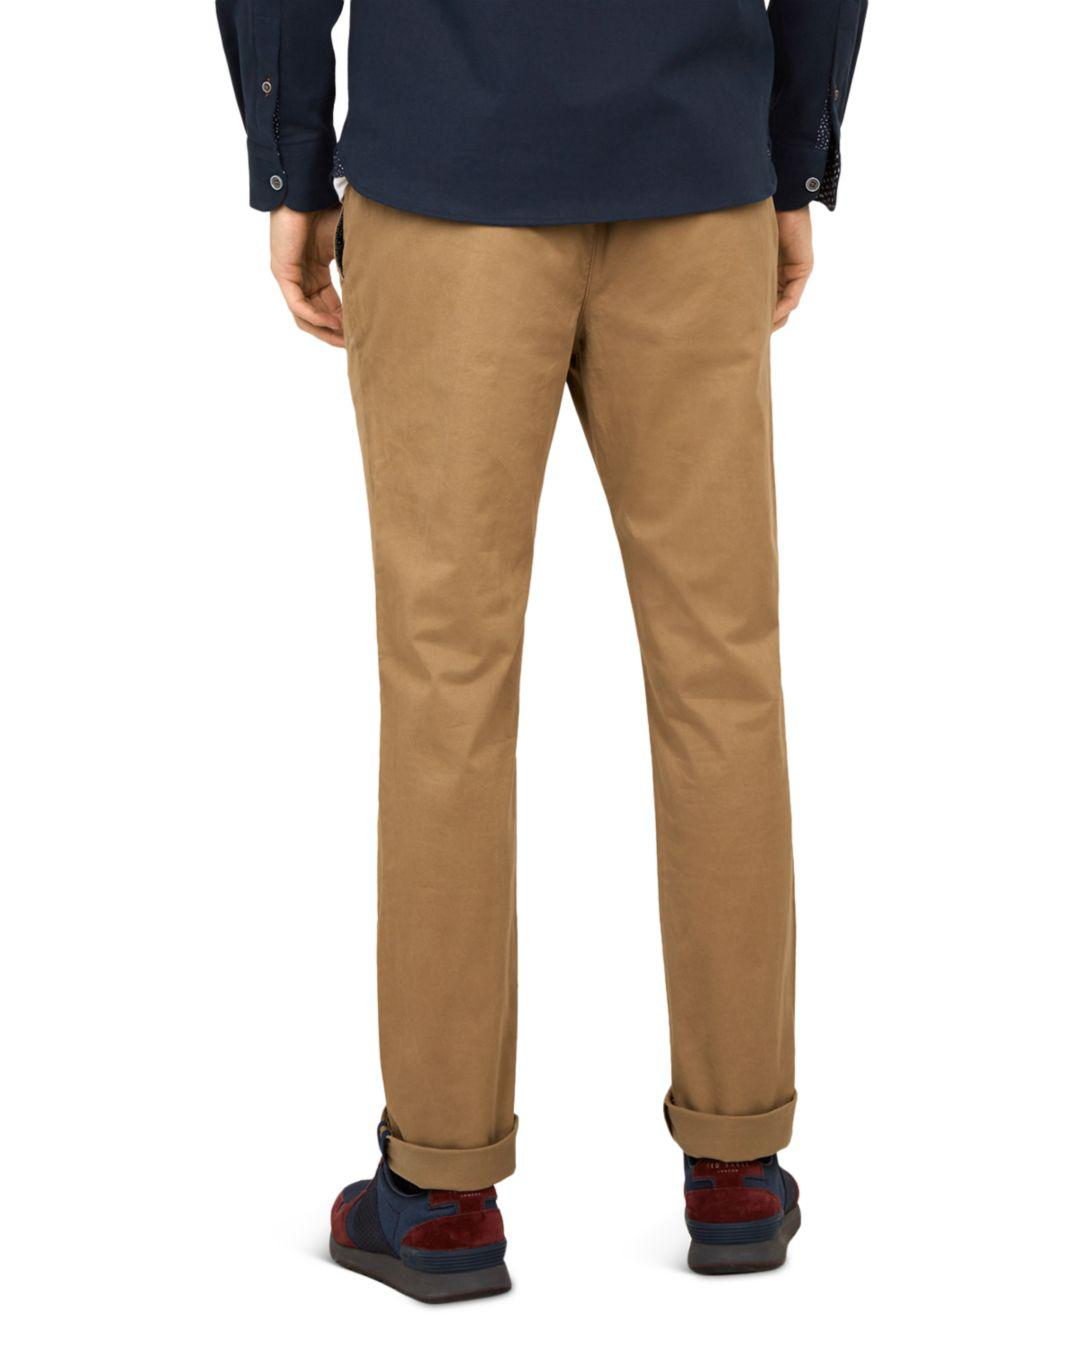 630a71016dbb Lyst - Ted Baker Seenchi Slim Fit Chinos in Natural for Men